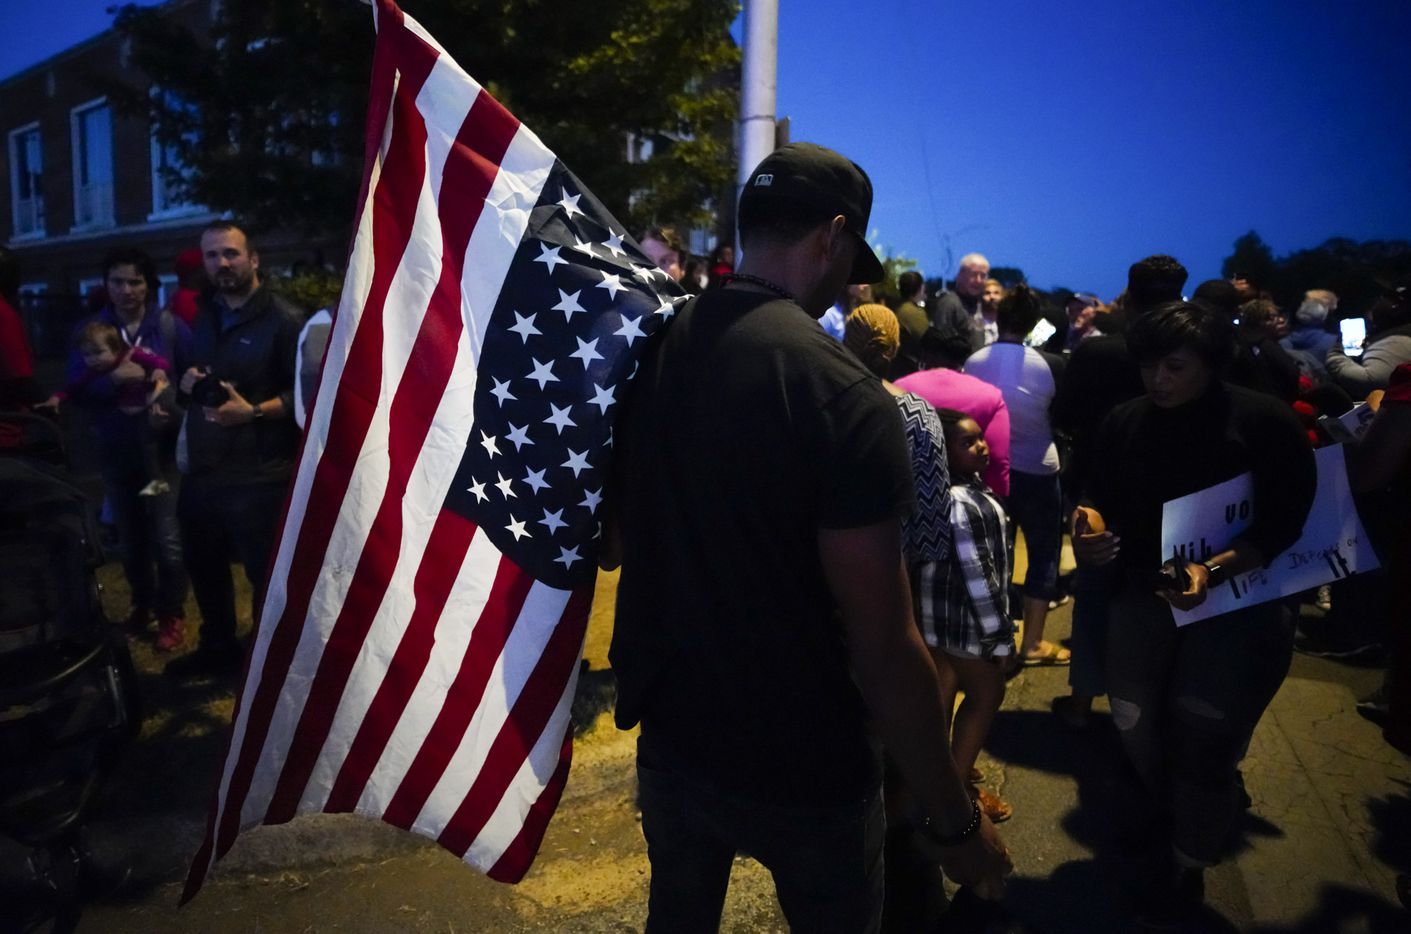 A large crowd of protestors, including a man carrying an upside-down American flag, gathered outside the house where Atatiana Jefferson was shot and killed, during a community vigil for Jefferson on Sunday, Oct. 13, 2019, in Fort Worth.